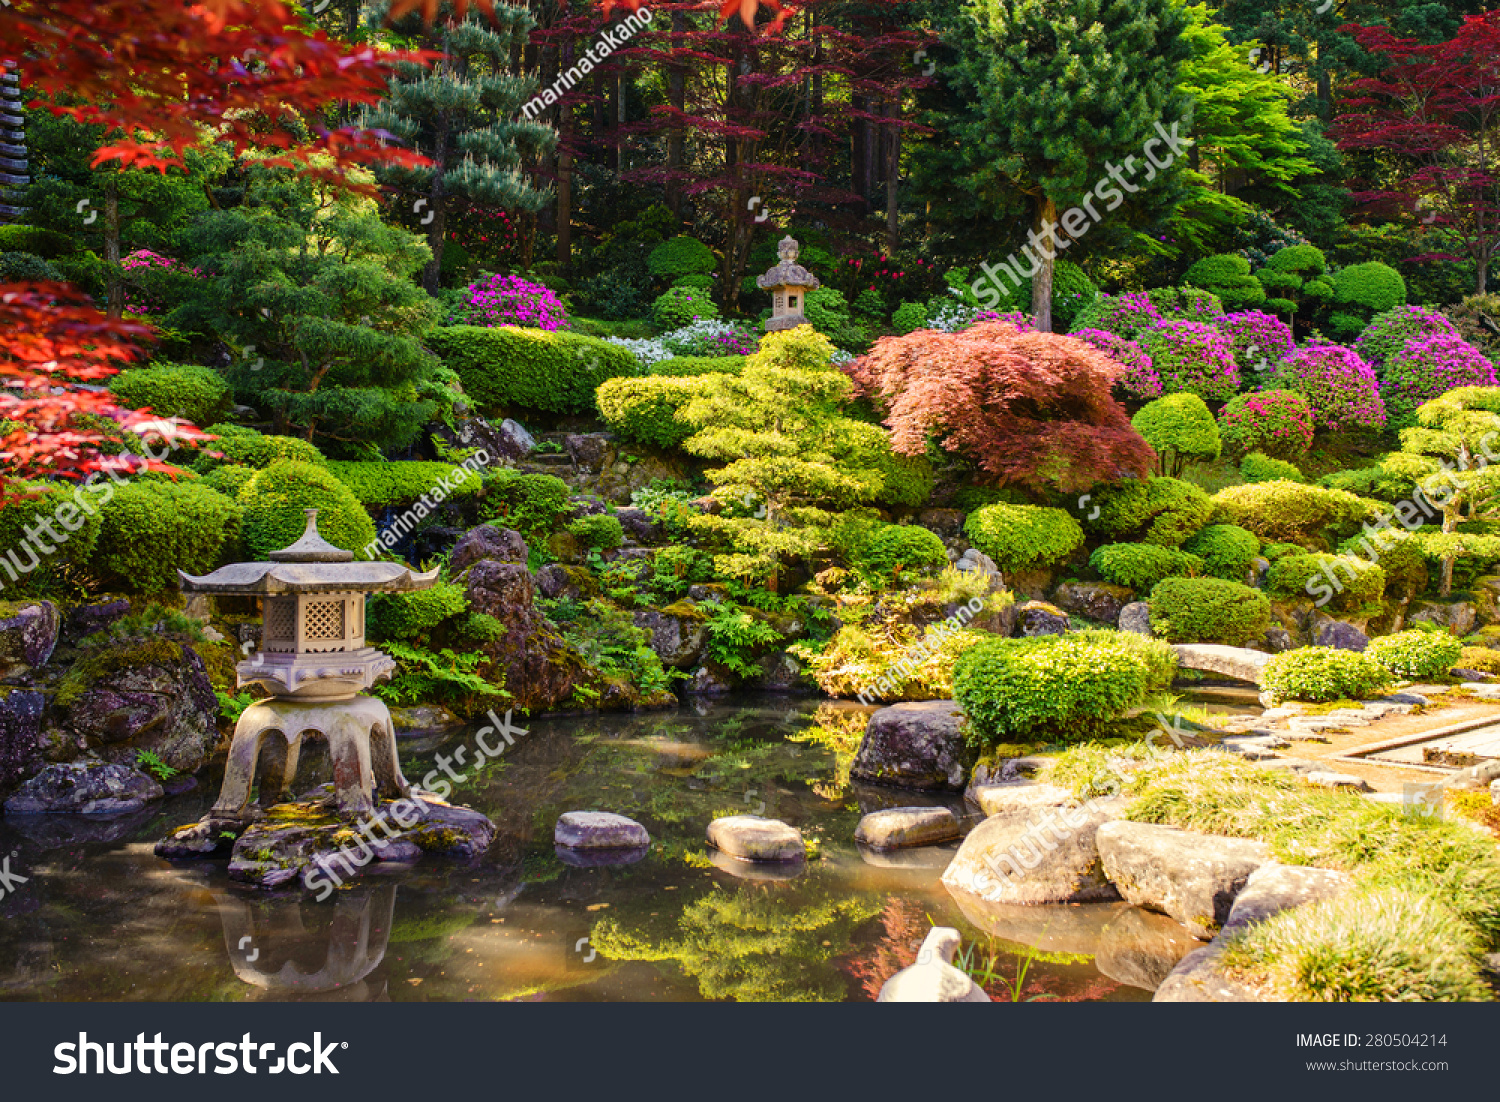 Japanese garden with pond behind house stock photo 280504214 shutterstock - The pond house nature above all ...